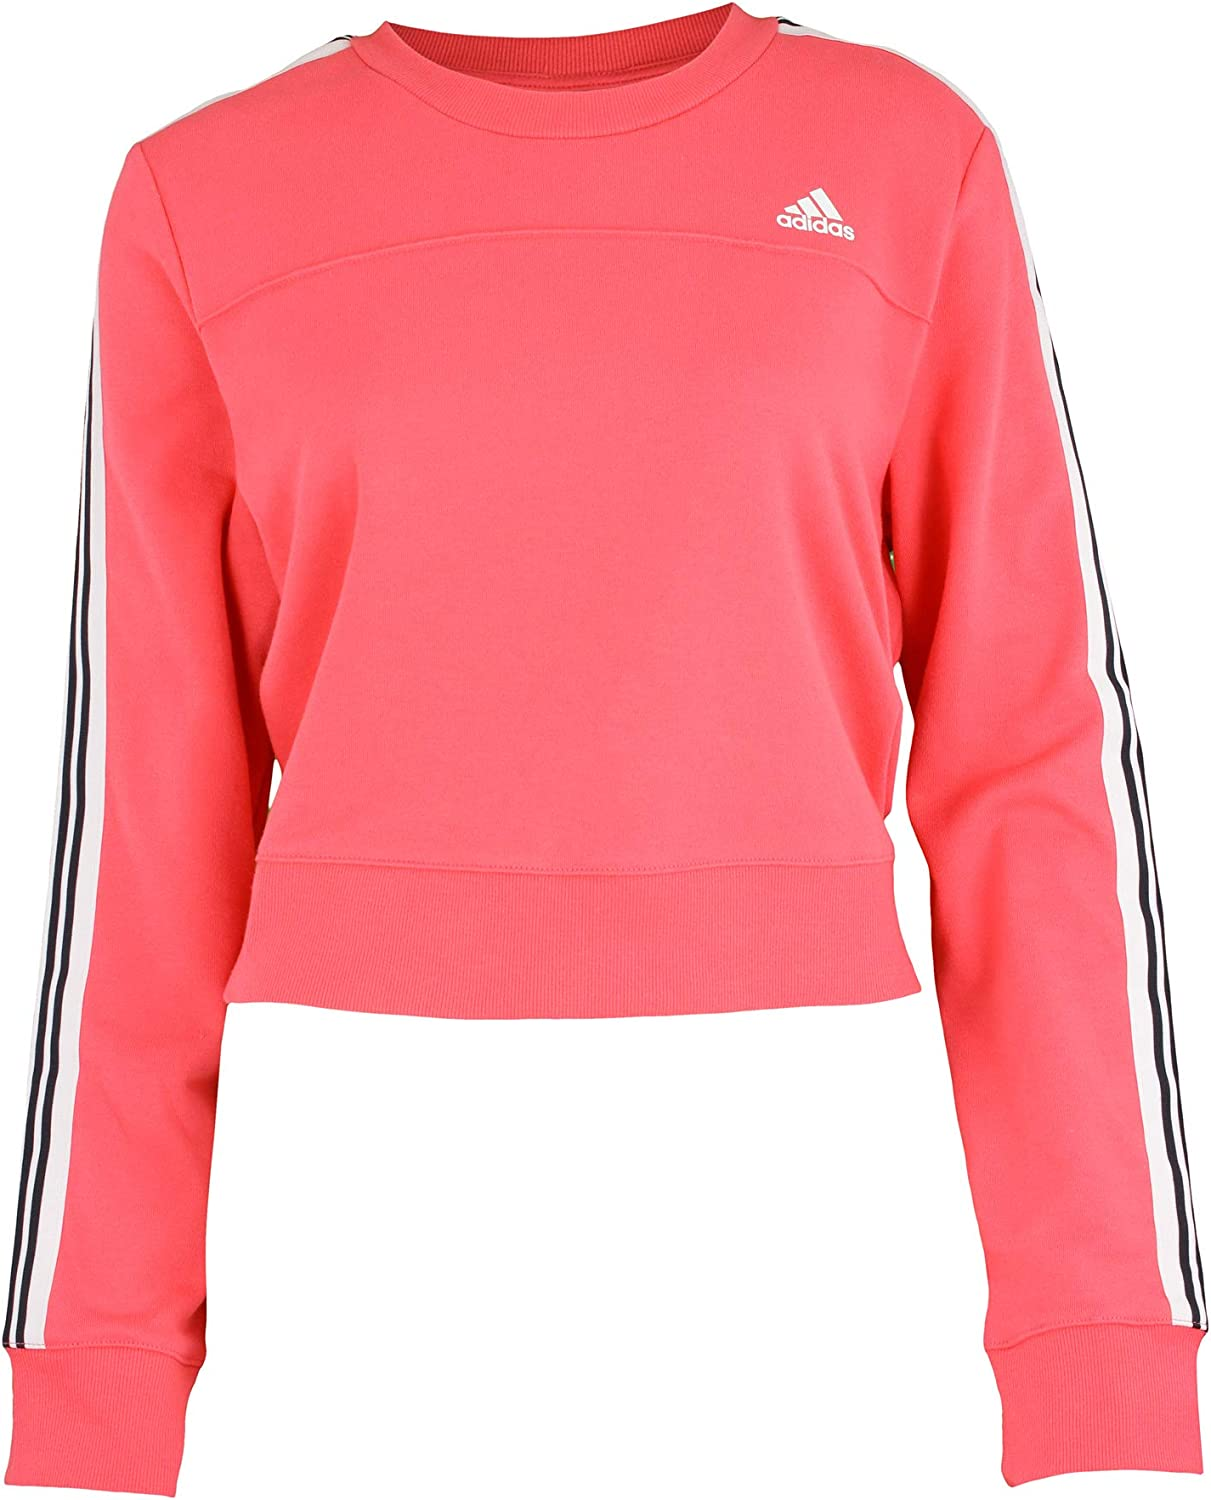 protesta Compra picnic  Amazon.com: adidas Women's Cho Crew Pullover Sweater, Pink: Clothing